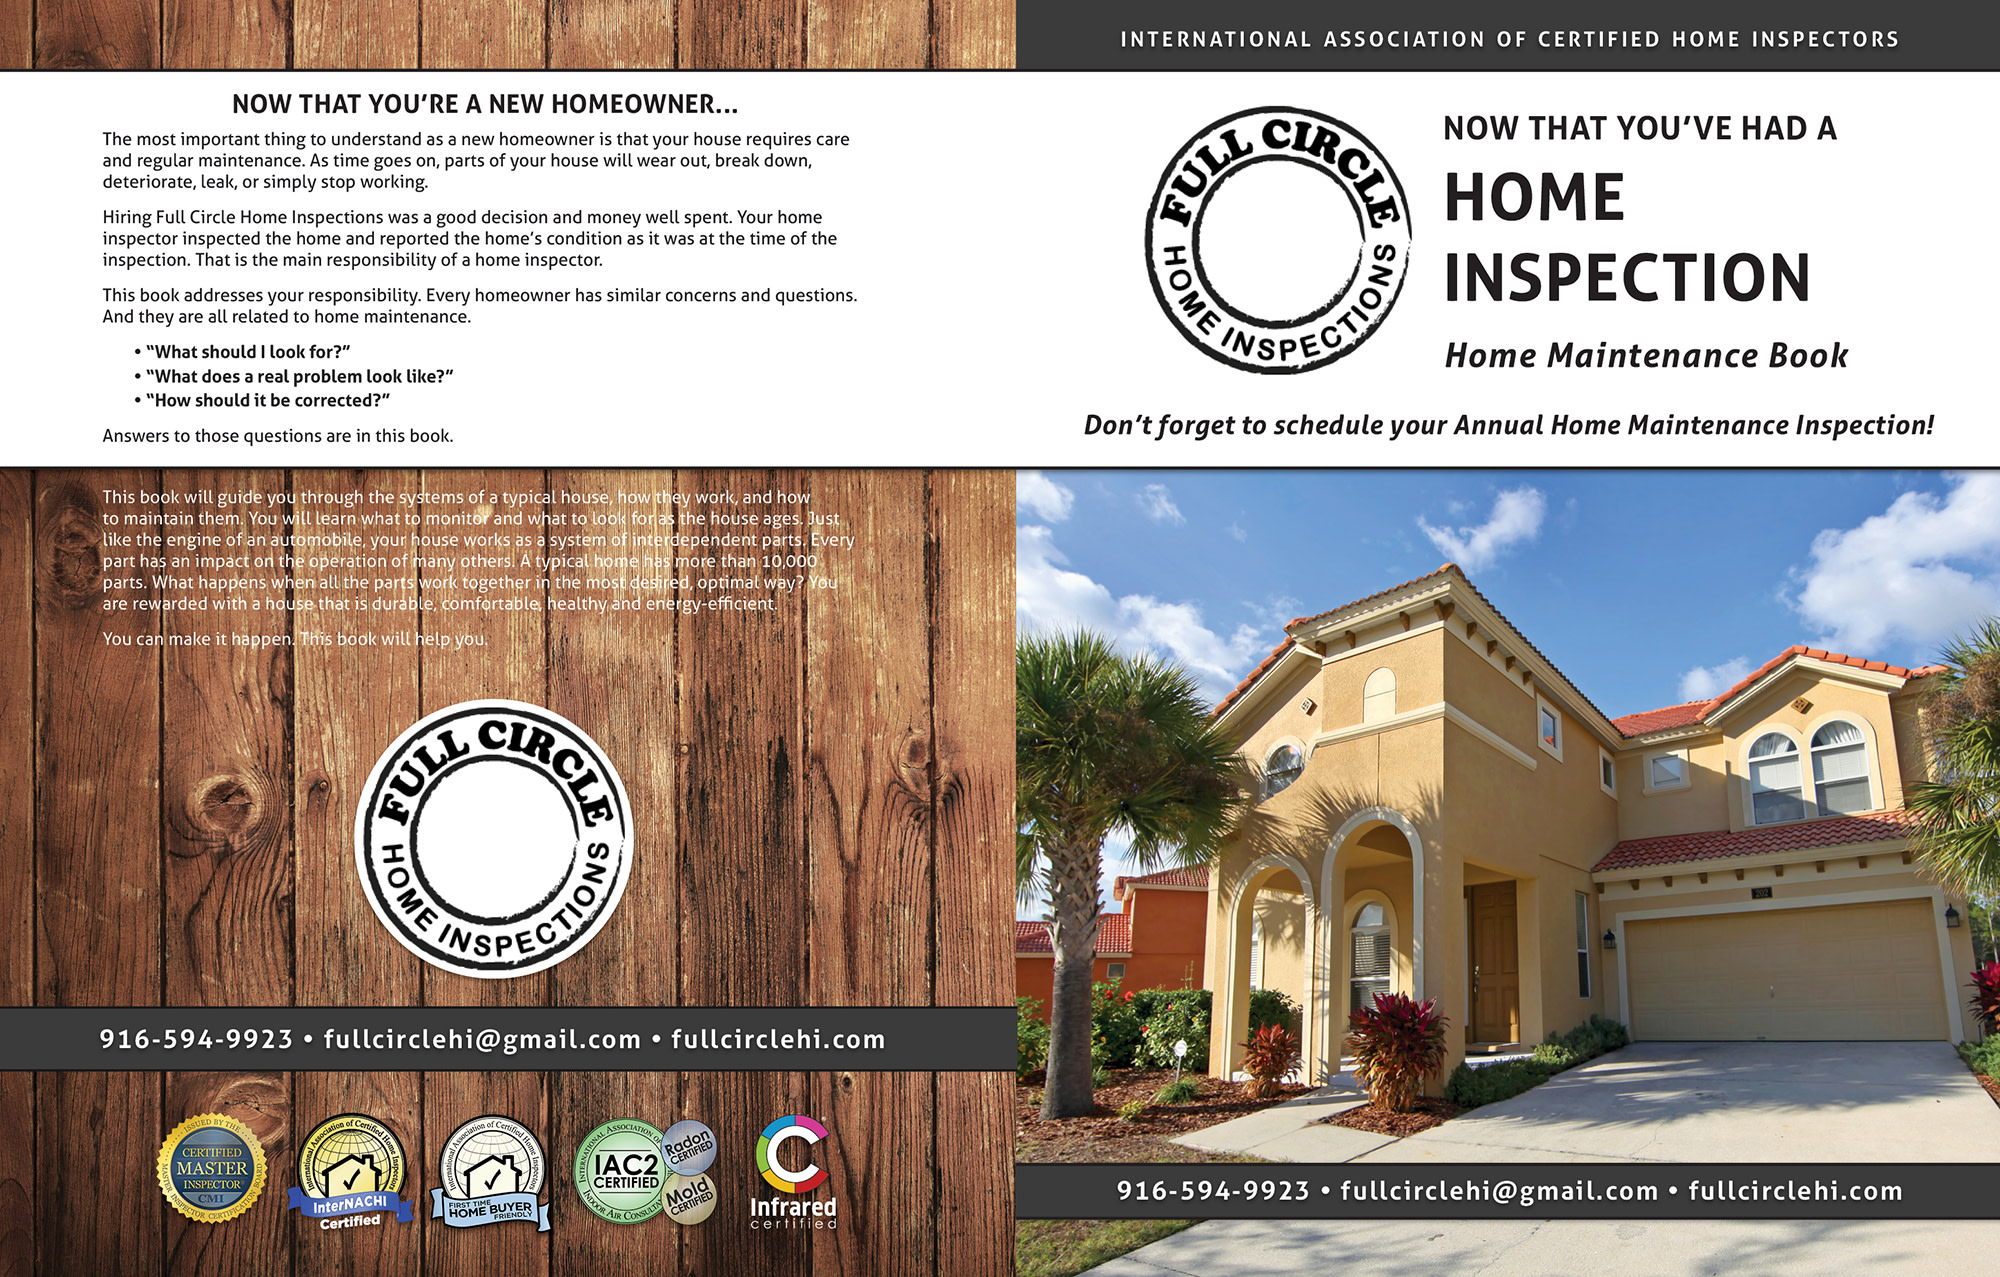 Custom Home Maintenance Book for Full Circle Home Inspections